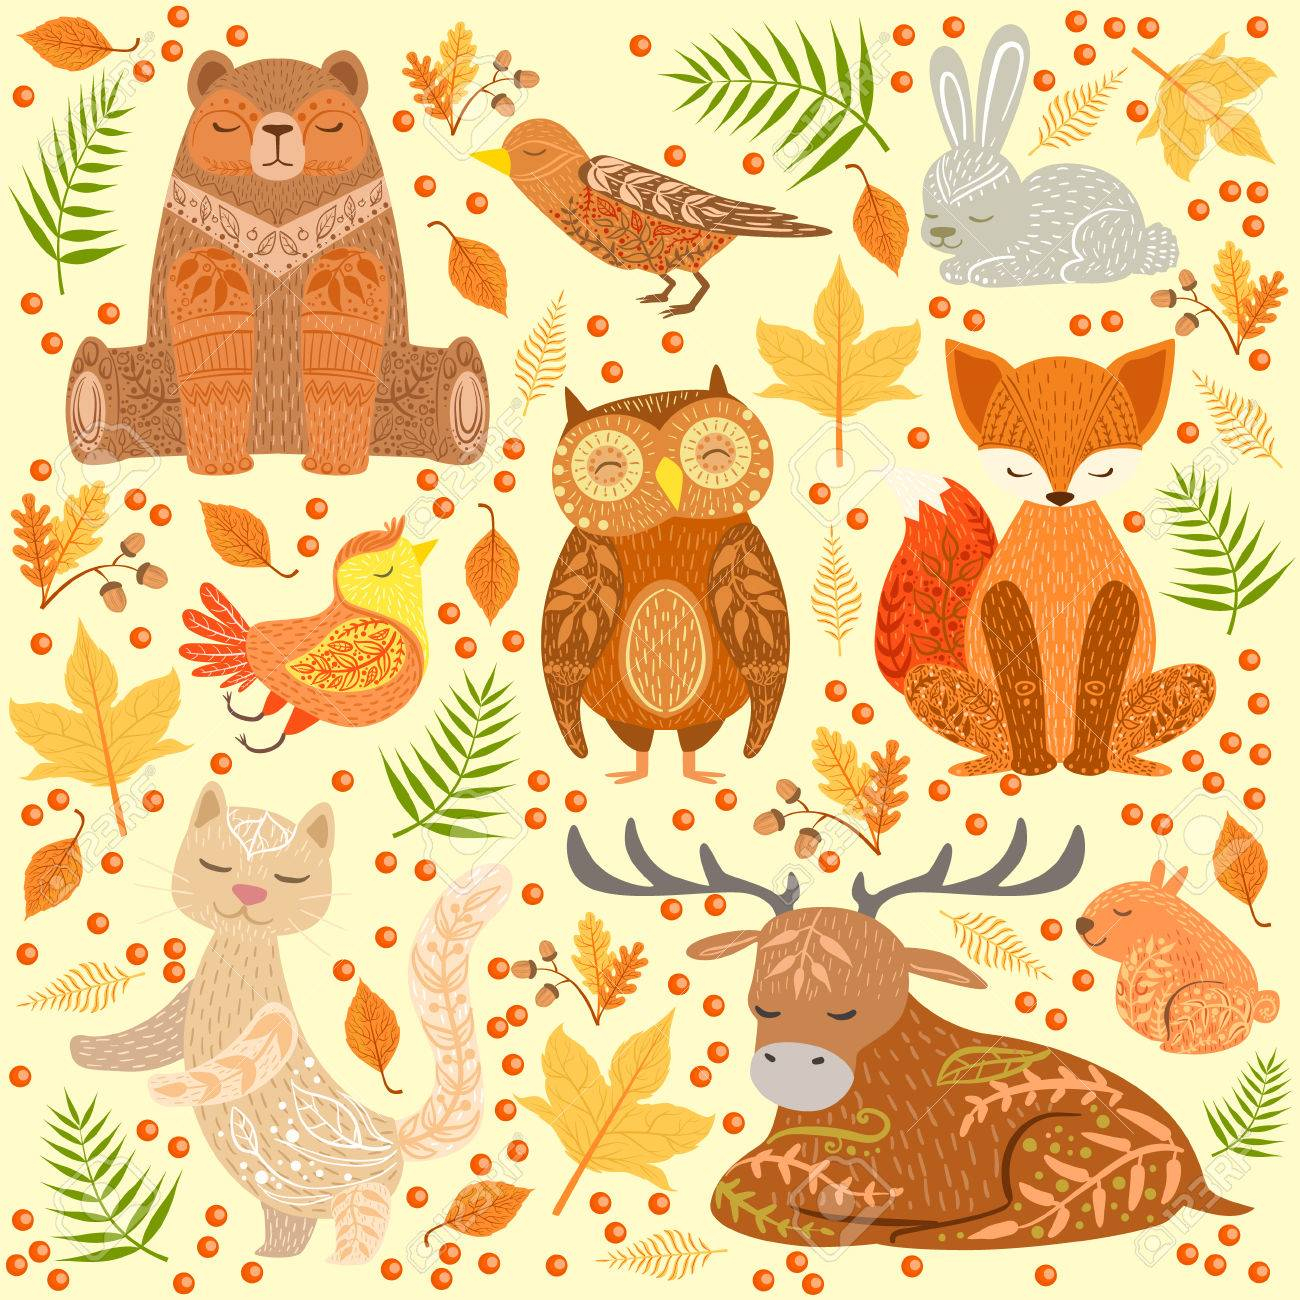 Forest Animals Covered In Ornamental Patterns Illustration. Hand Drawn  Print In Bright Colors With Artistic Details On Background With Autumn Eaves avec Image D Animaux A Imprimer En Couleur